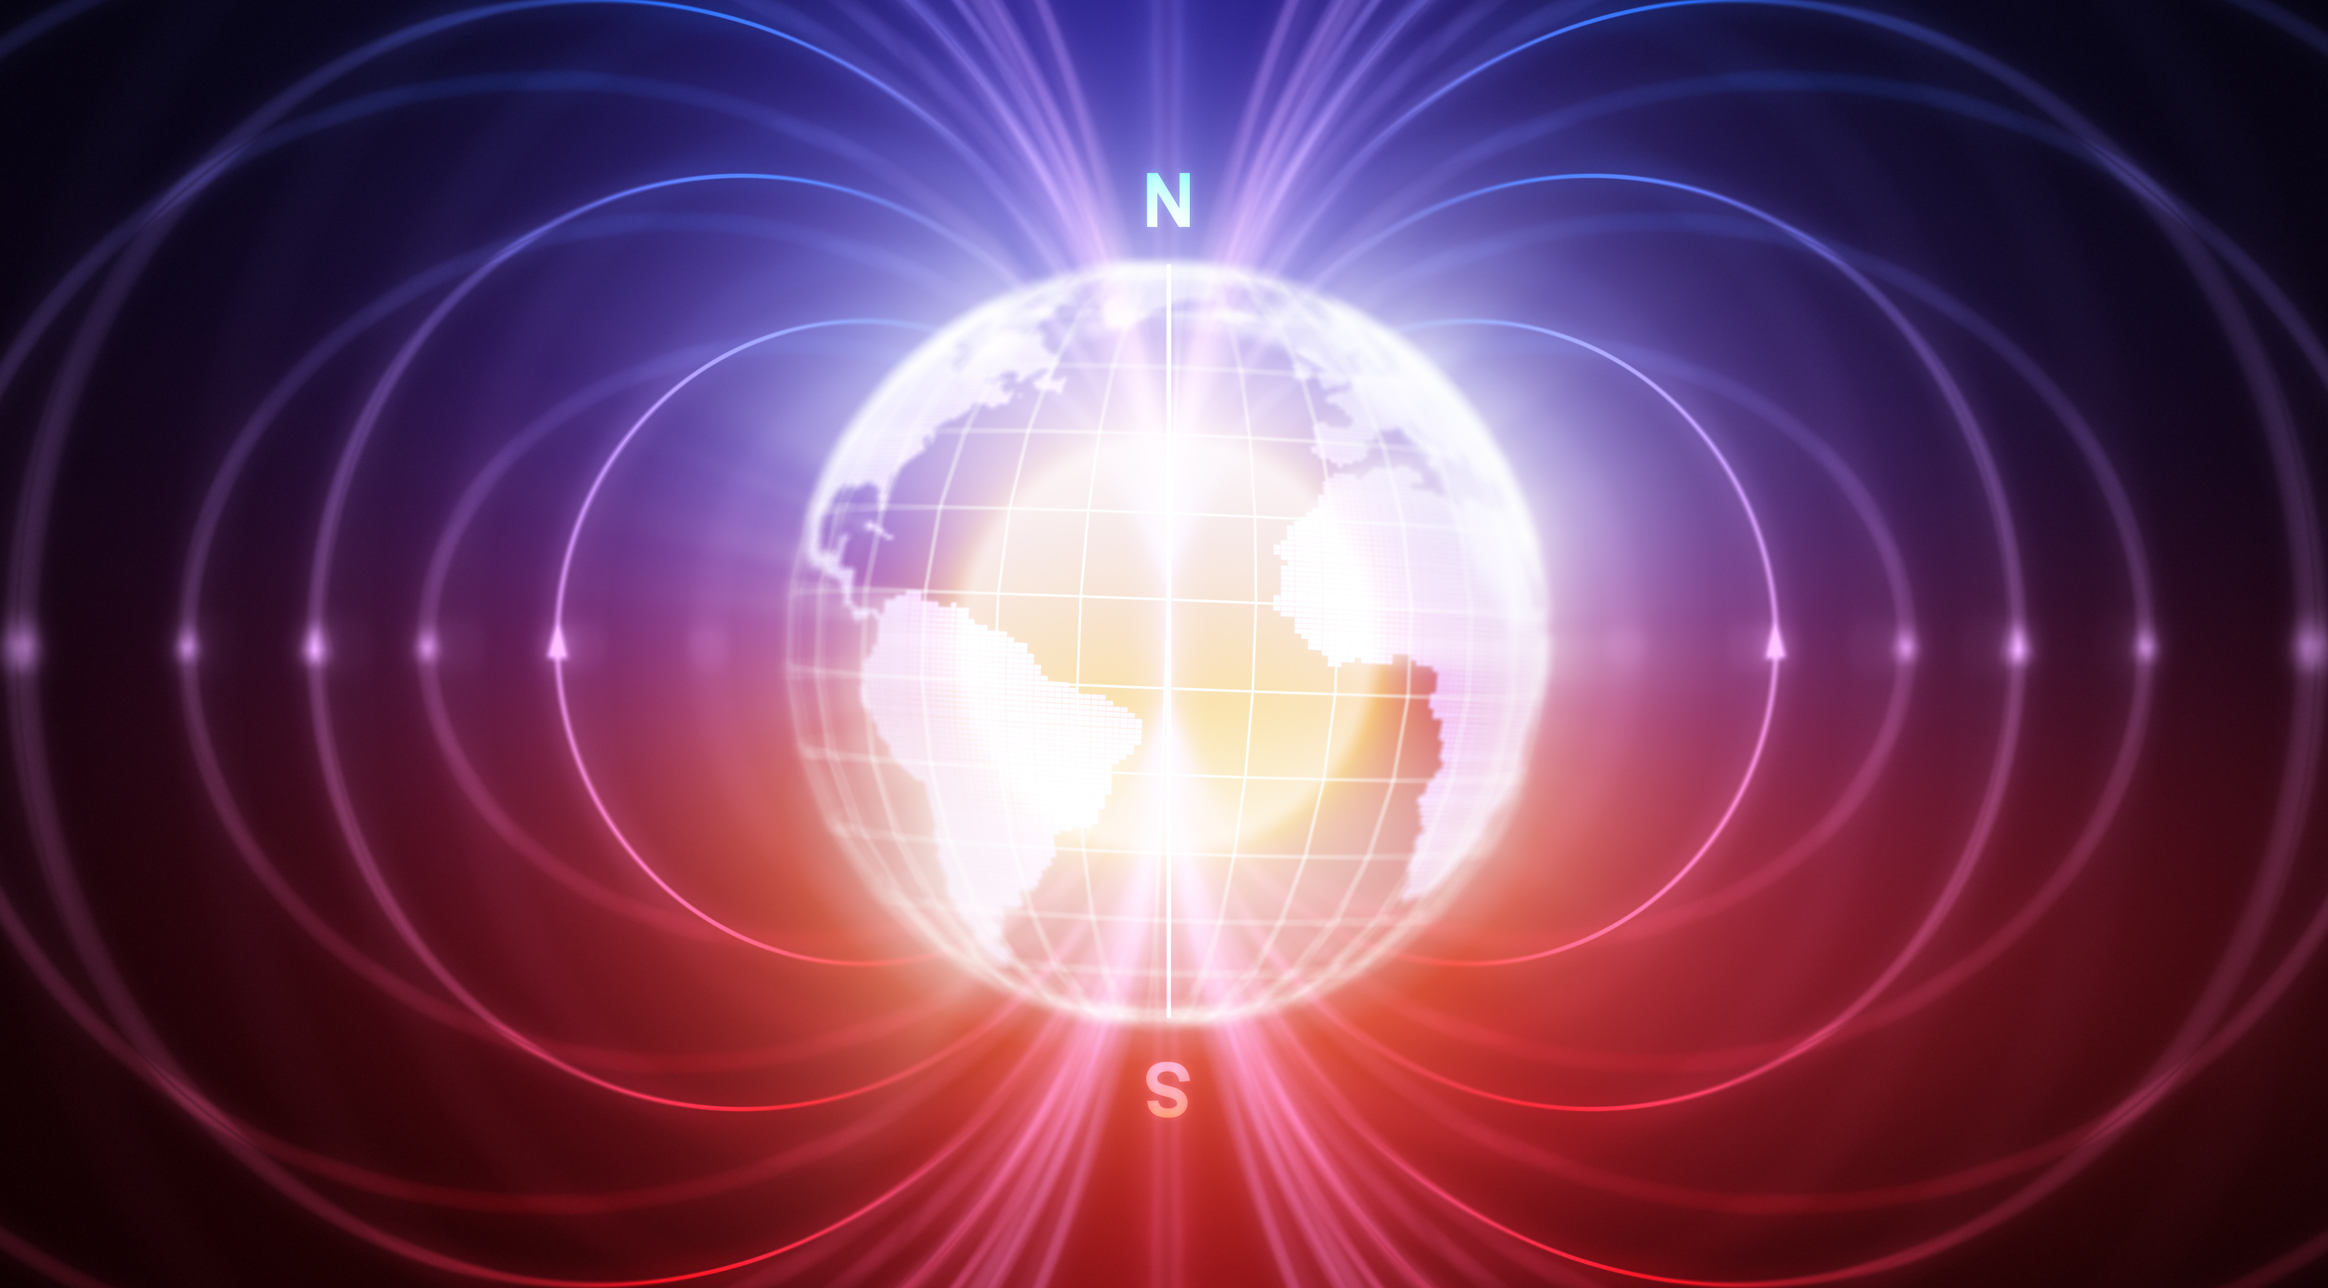 The Earth is protected from cosmic radiation by a magnetic field that stems from its magnetic poles